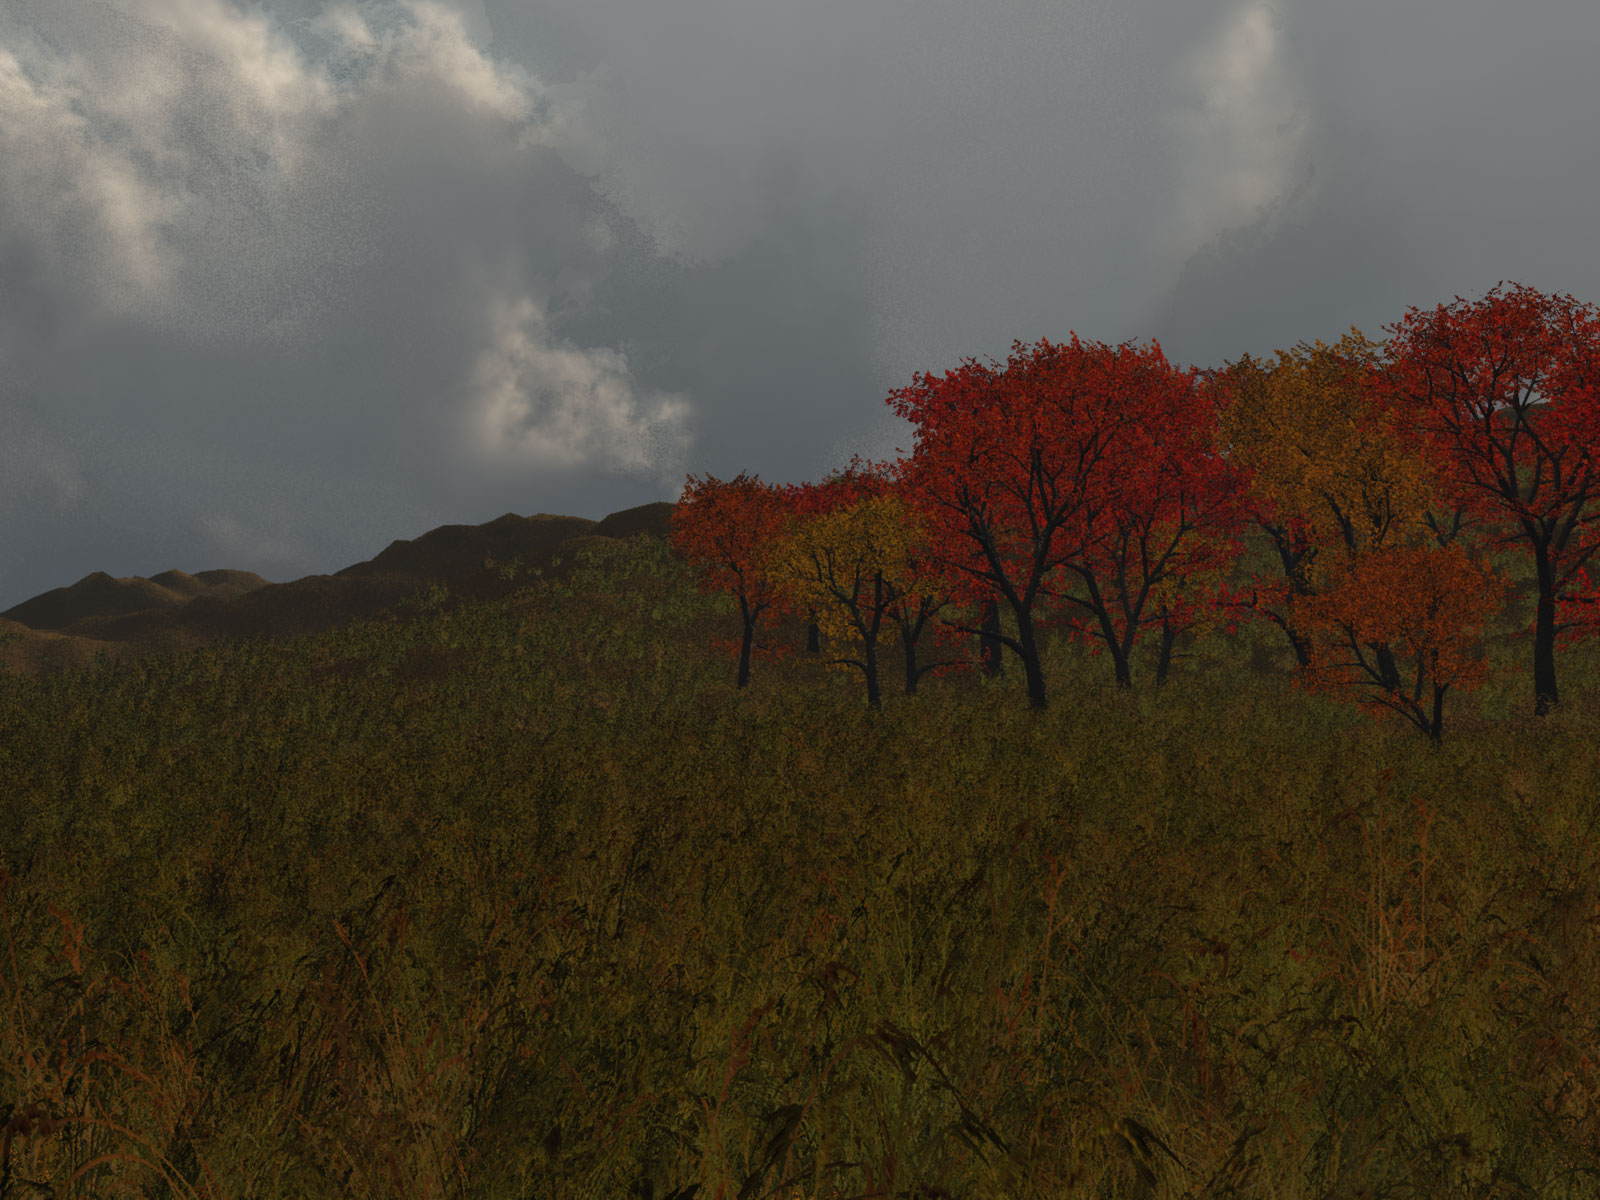 gallery/gal/12_Dreams_of_Steel_and_Coal/Autumn_Mountains.jpg